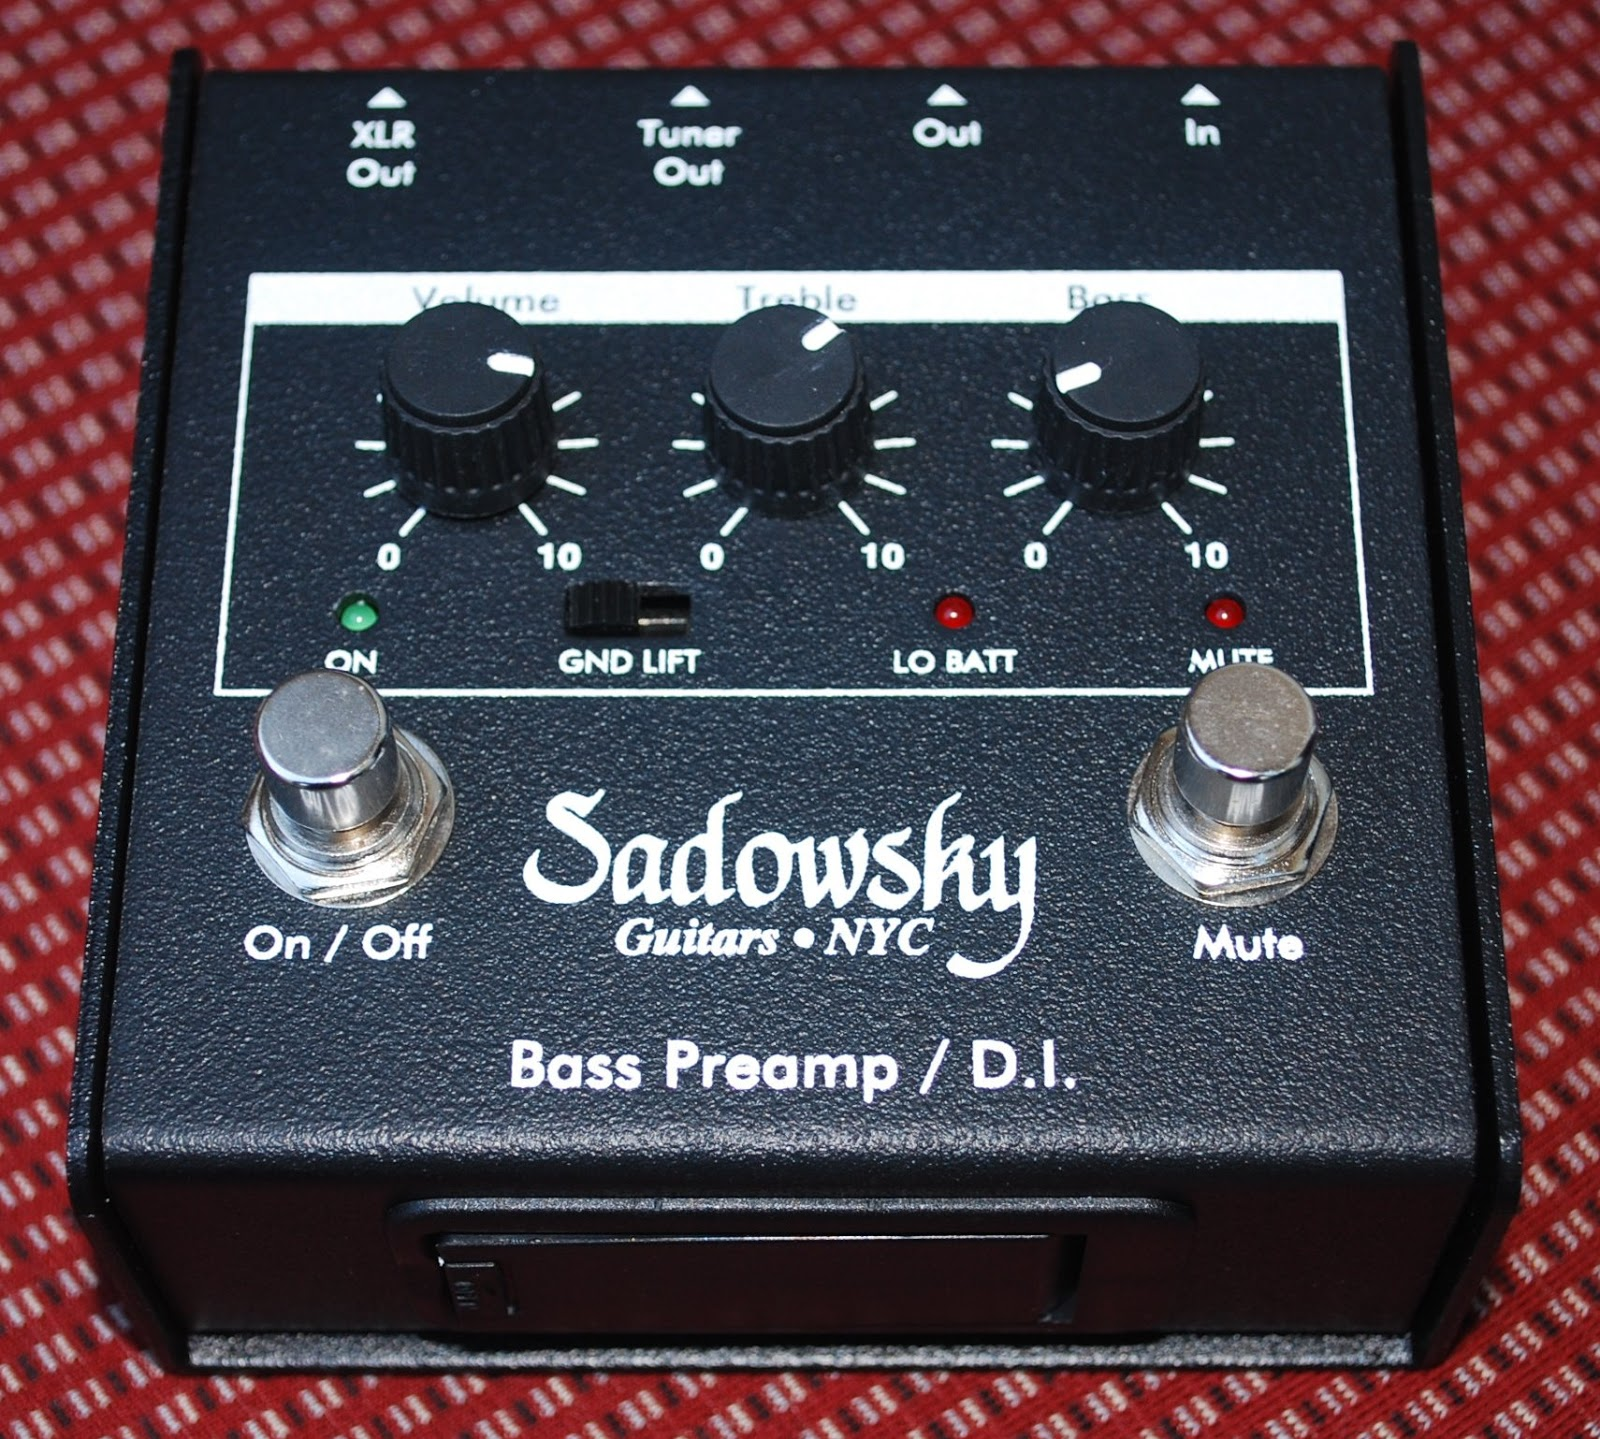 rex and the bass sadowsky preamp di box pedal review. Black Bedroom Furniture Sets. Home Design Ideas